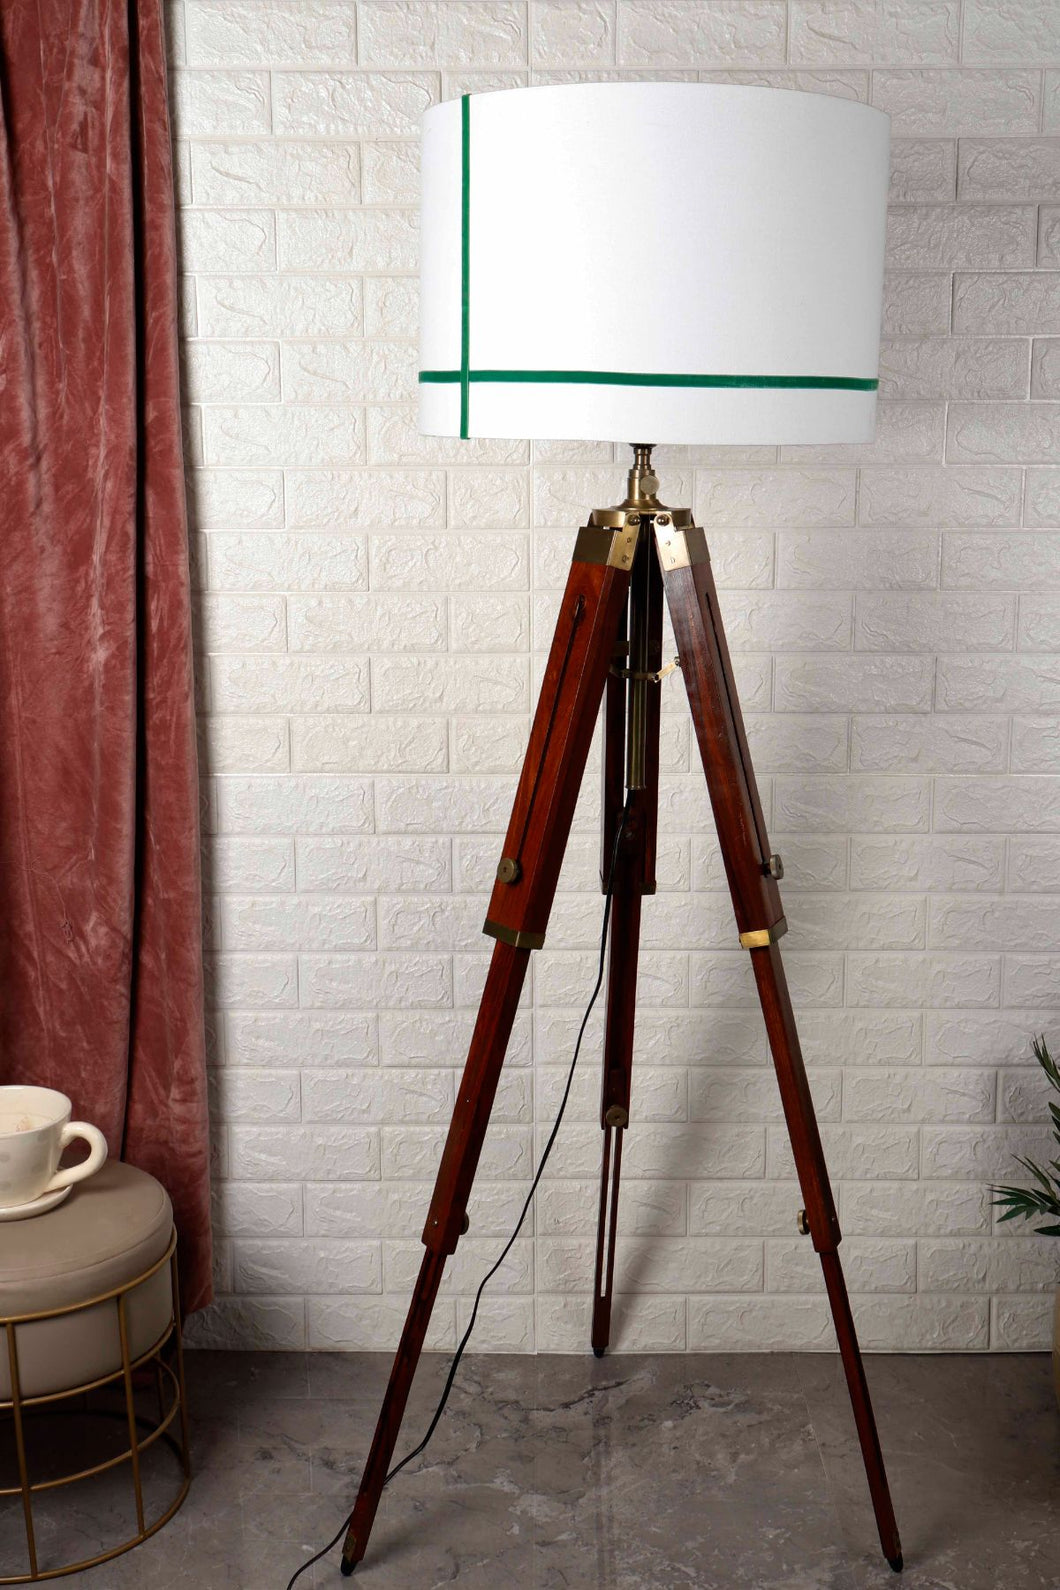 Triple Fold Brass Lamp Stand with Green Stripes White Shade in [2 Size]